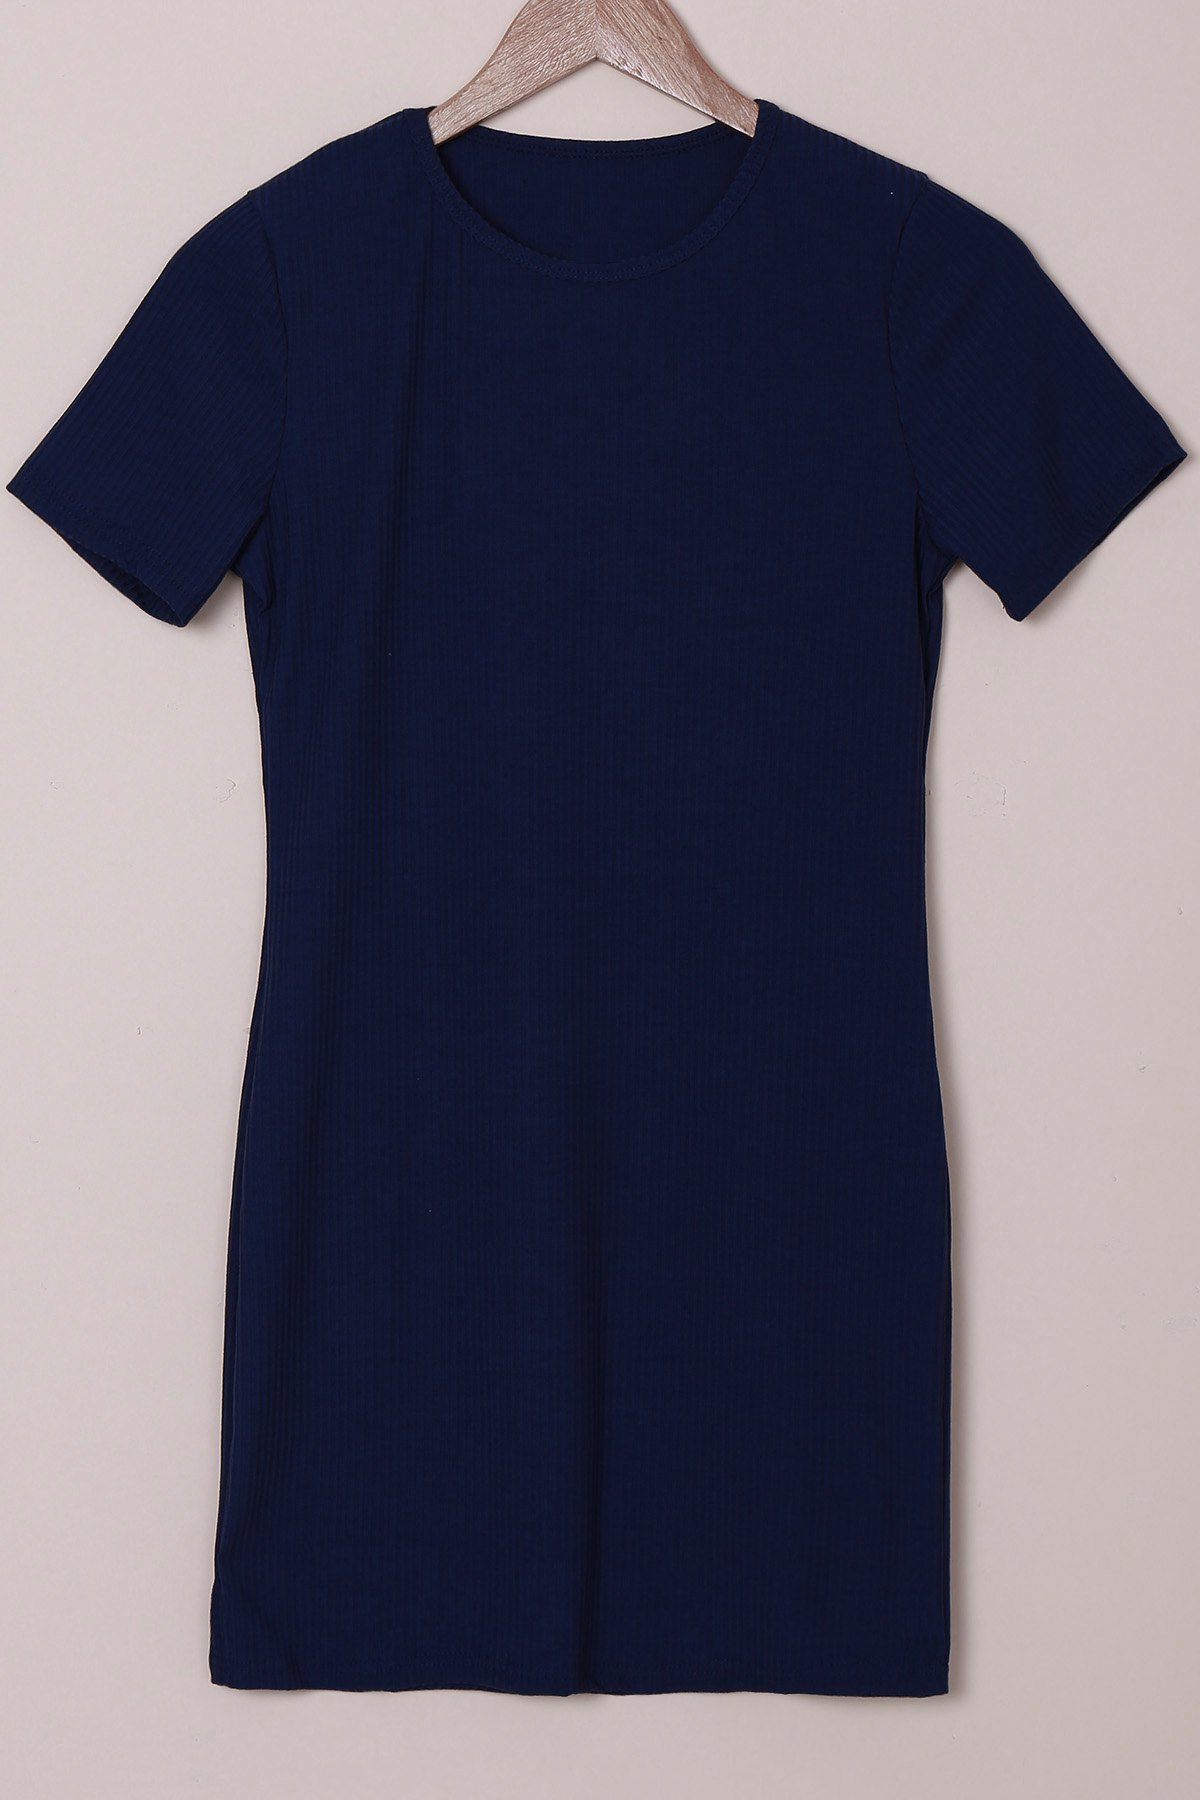 Brief Purplish Blue Round Collar Short Sleeve Dress For Women - PURPLISH BLUE M